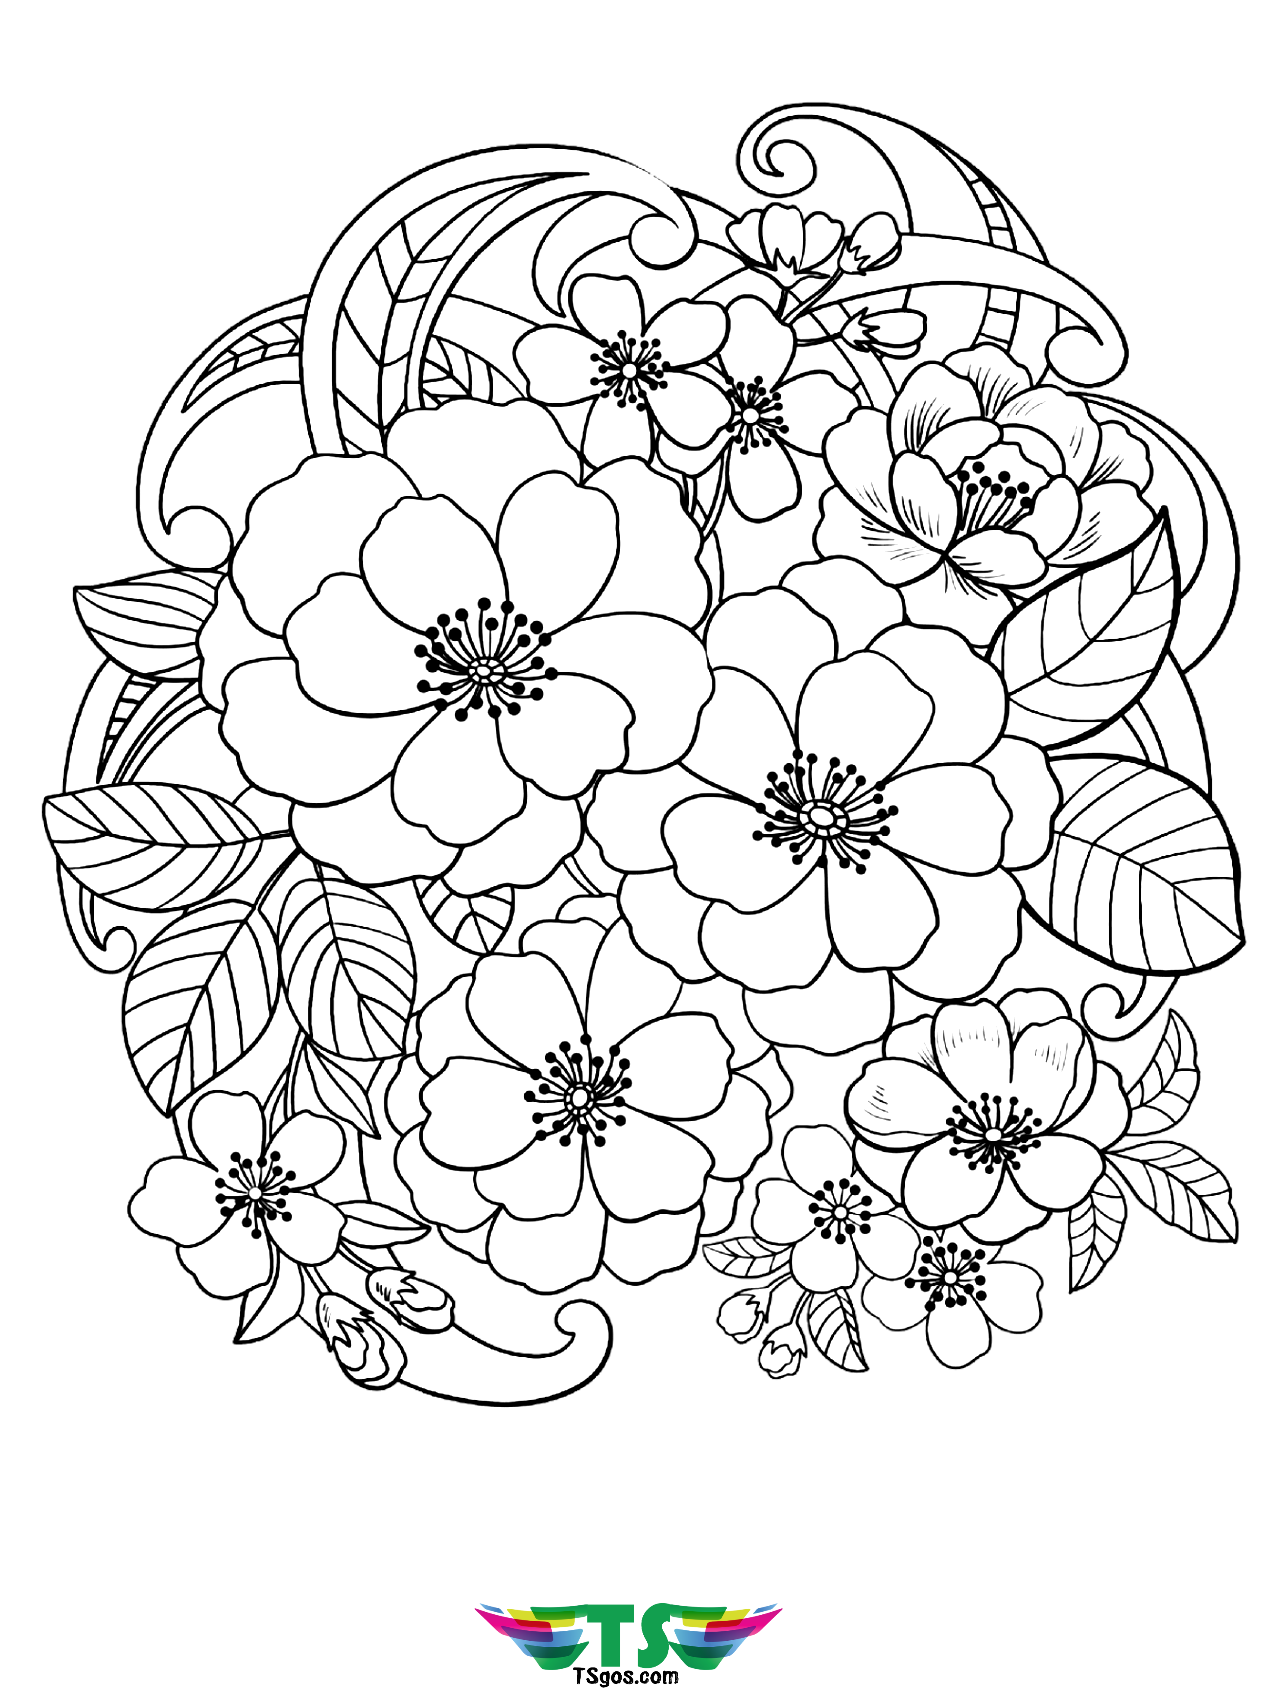 coloring image of a flower carnation flower coloring page free printable coloring pages image coloring flower of a